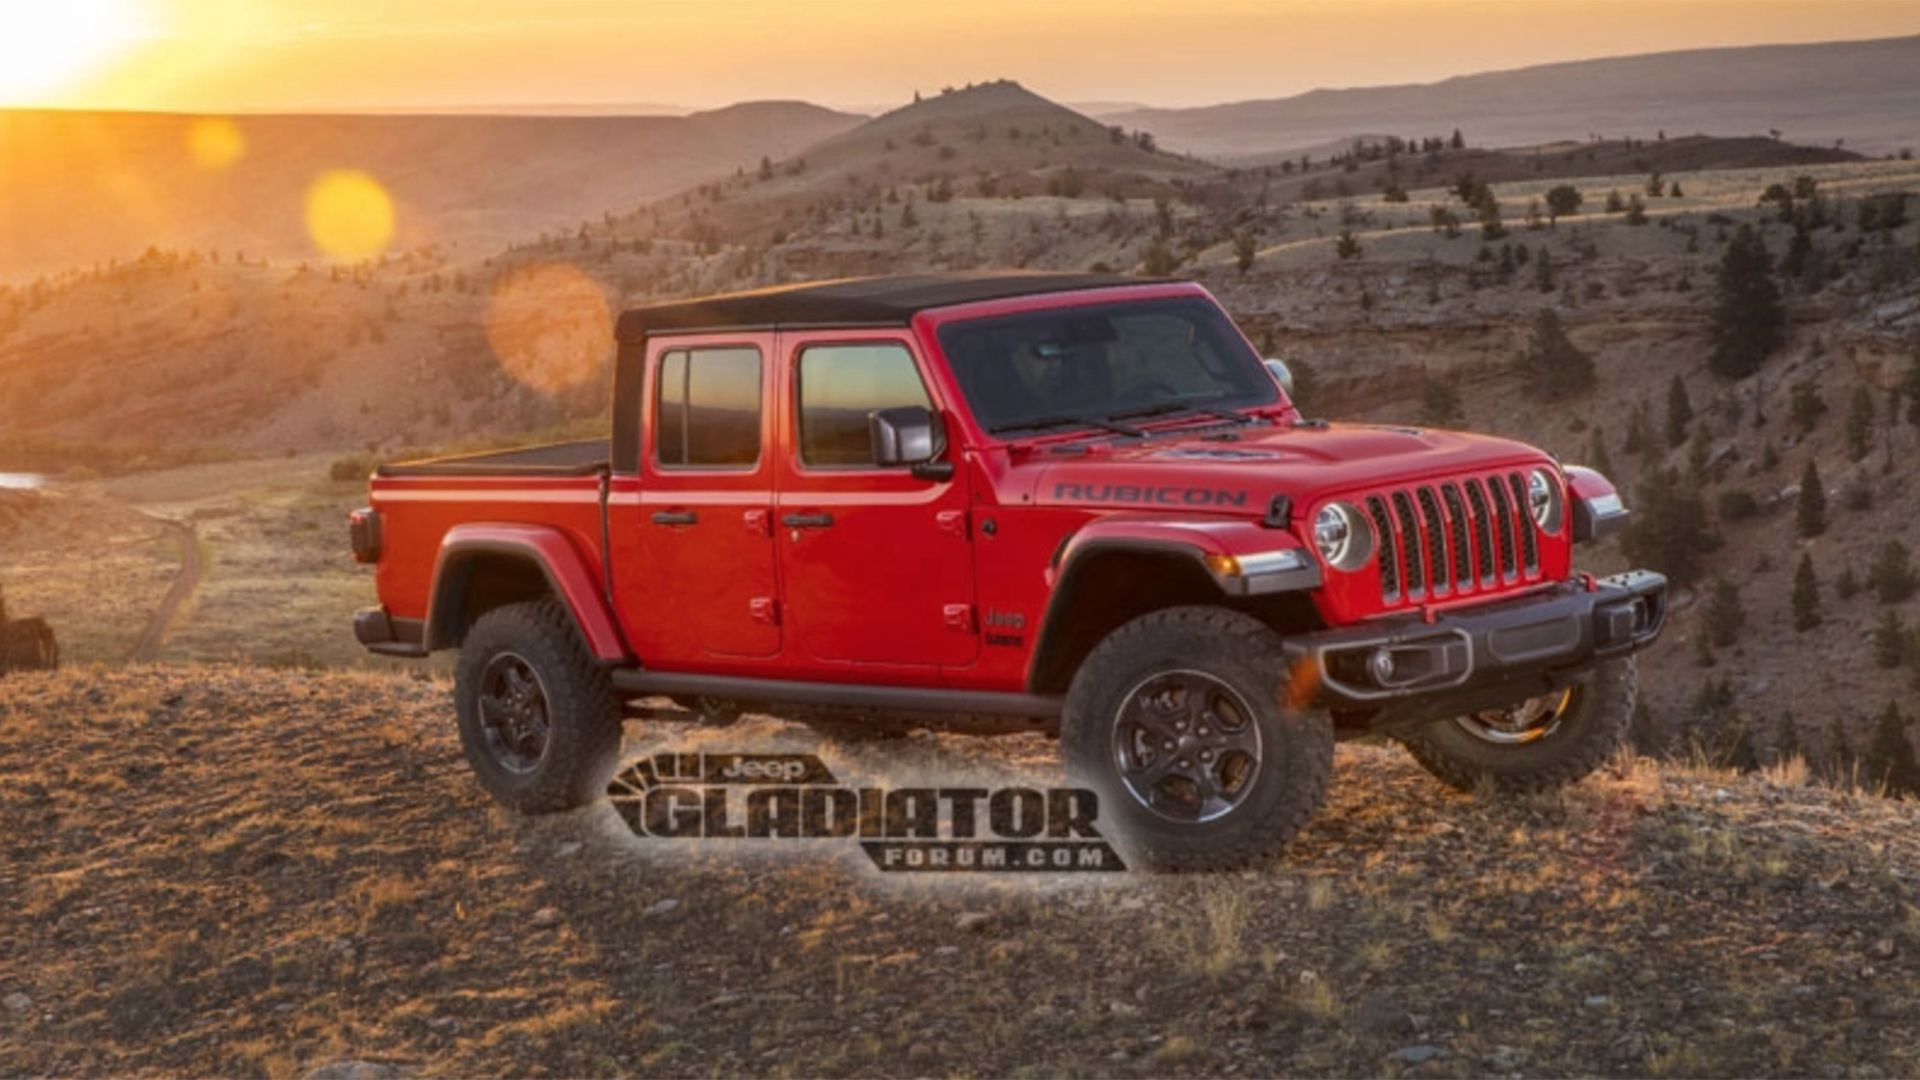 2020 Jeep Gladiator Pickup Truck Images Official Specs Leak Online Jeep Gladiator Jeep Wrangler Pickup